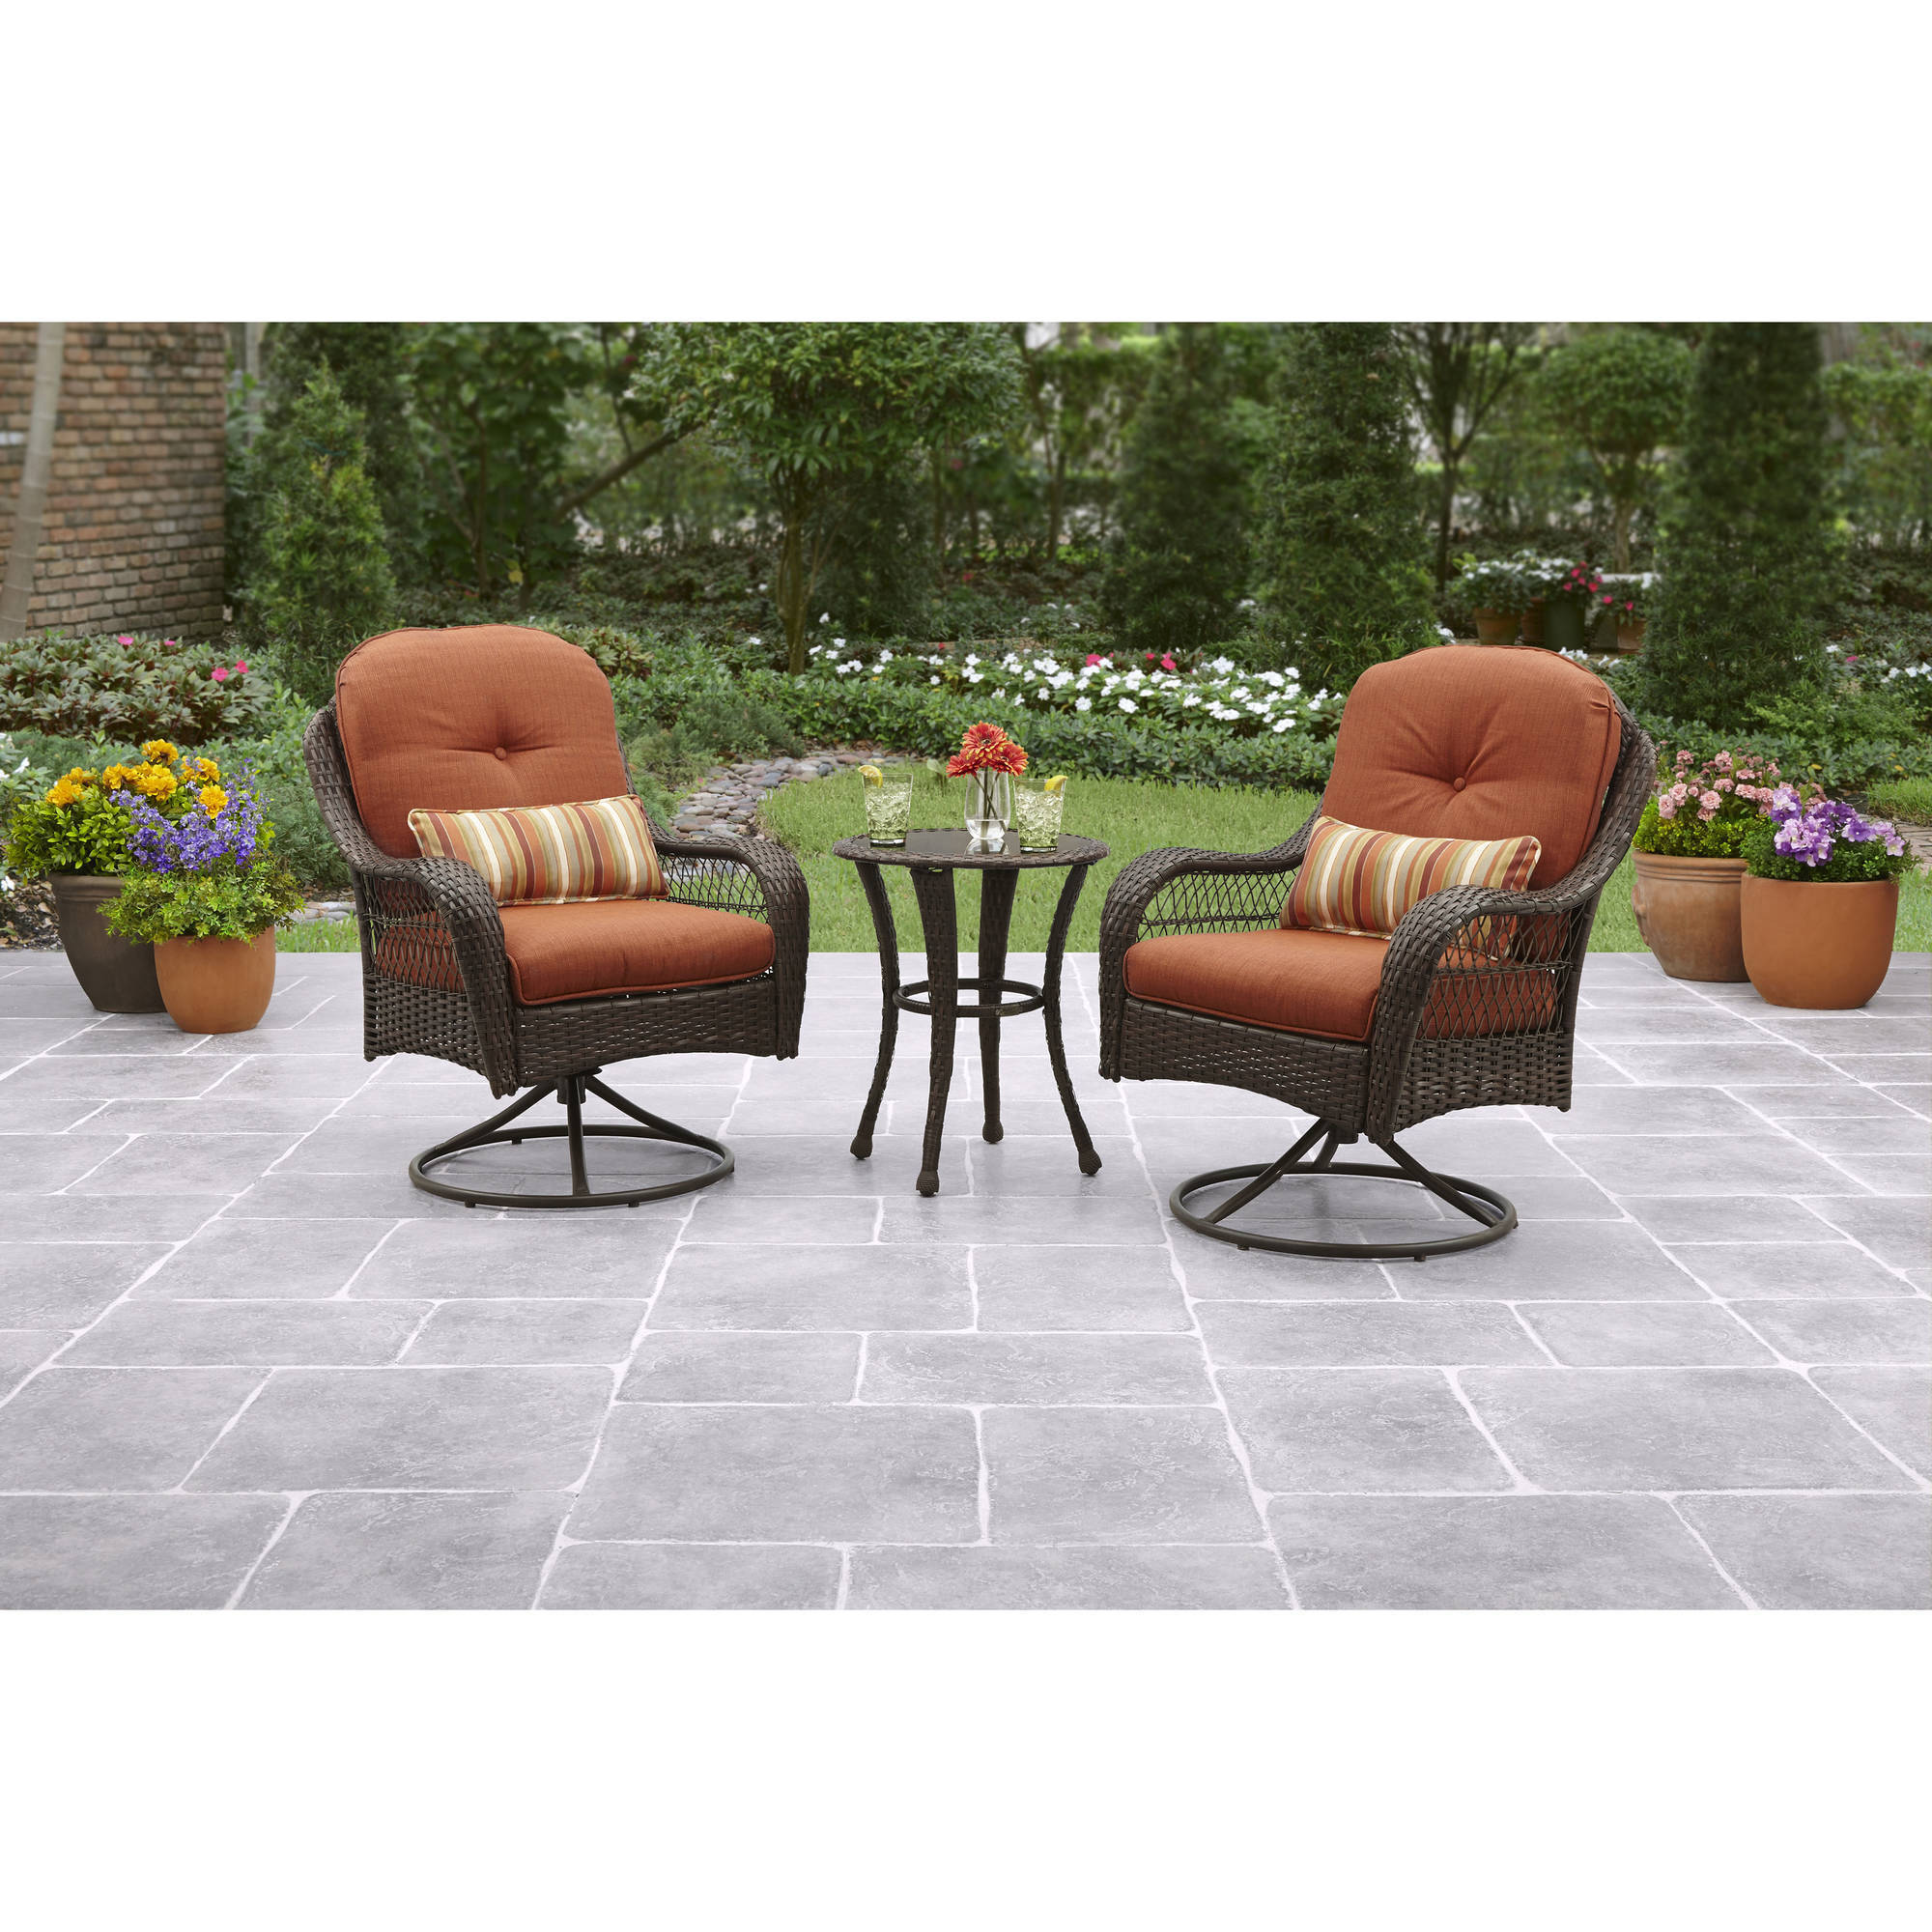 Better Homes and Gardens Azalea Ridge Outdoor Conversation Set